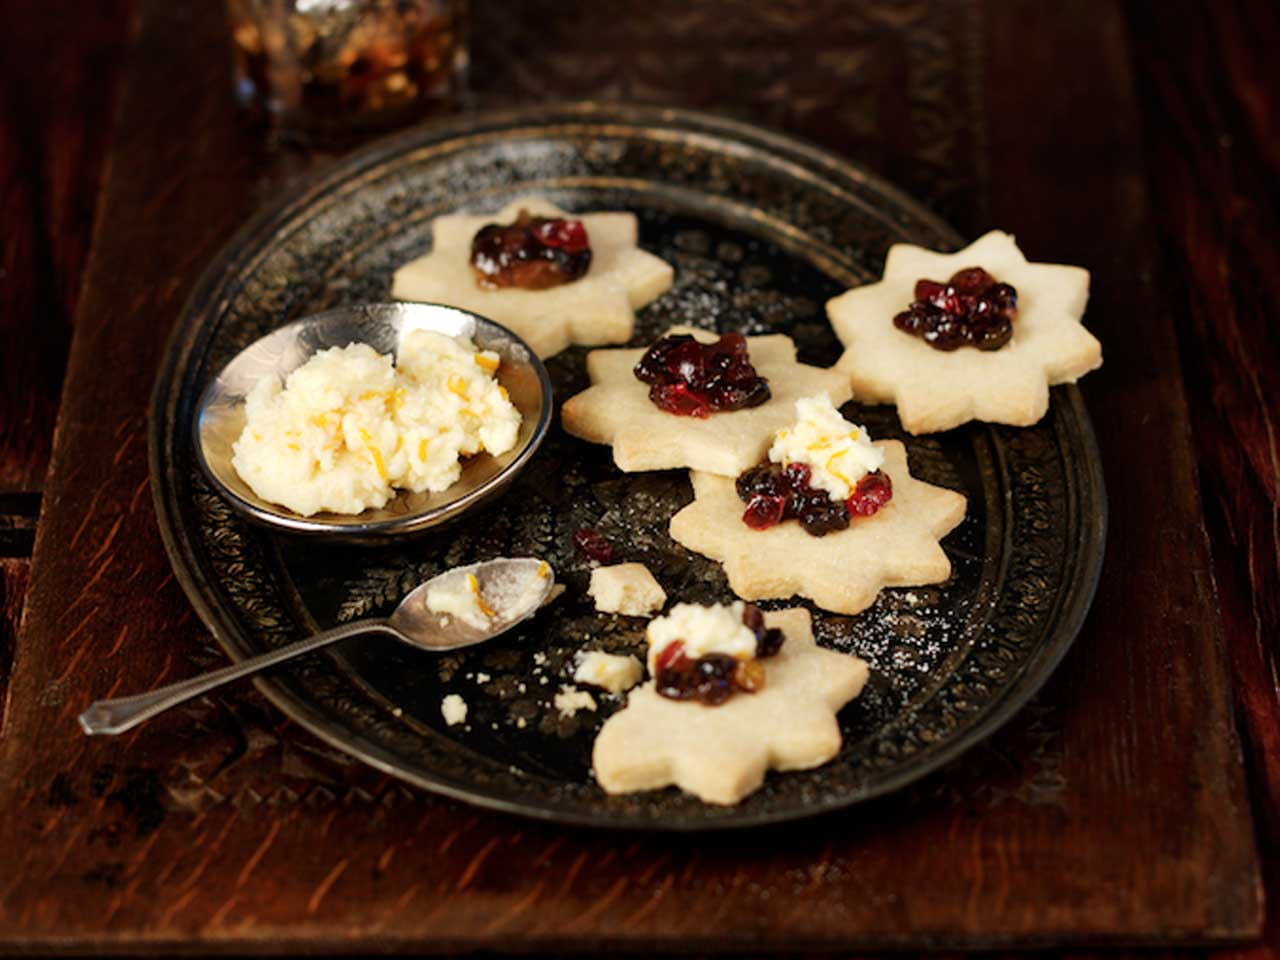 /contentlibrary/saga/publishing/verticals/food/recipes/lurpak/shortbread-stars-mincemeat-1280.jpg